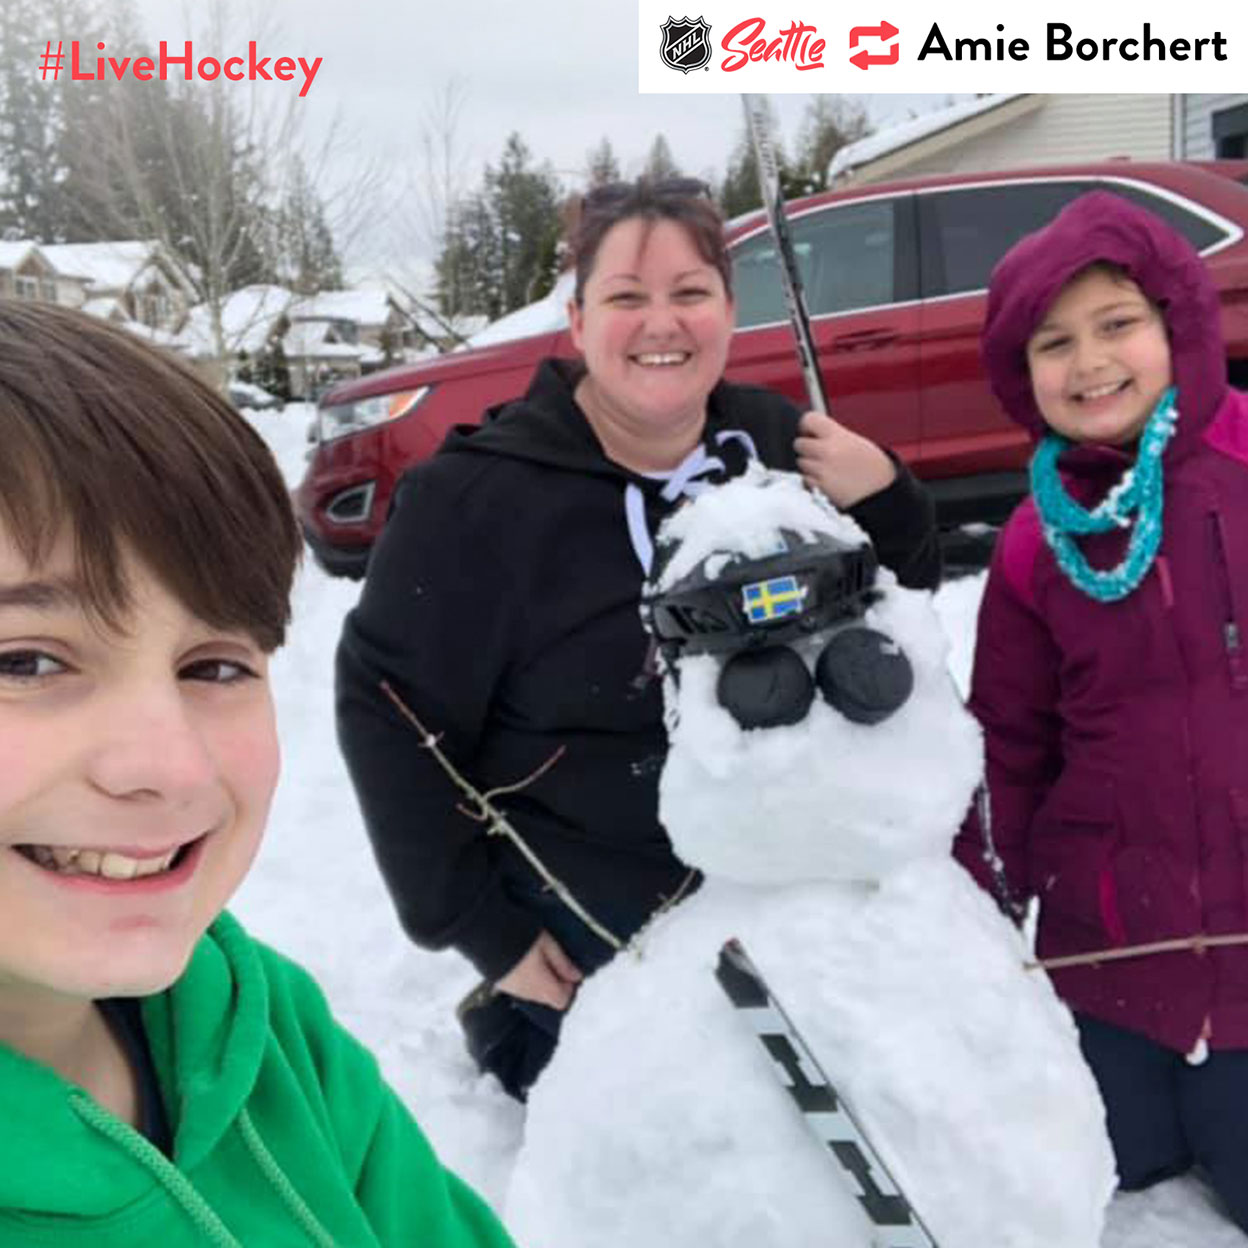 """""""#livehockey. The kids had wanted a hockey snowman so that's what we created. Pucks for eyes, a helmet we weren't actively using and a broken stick from one of the Tbirds."""""""